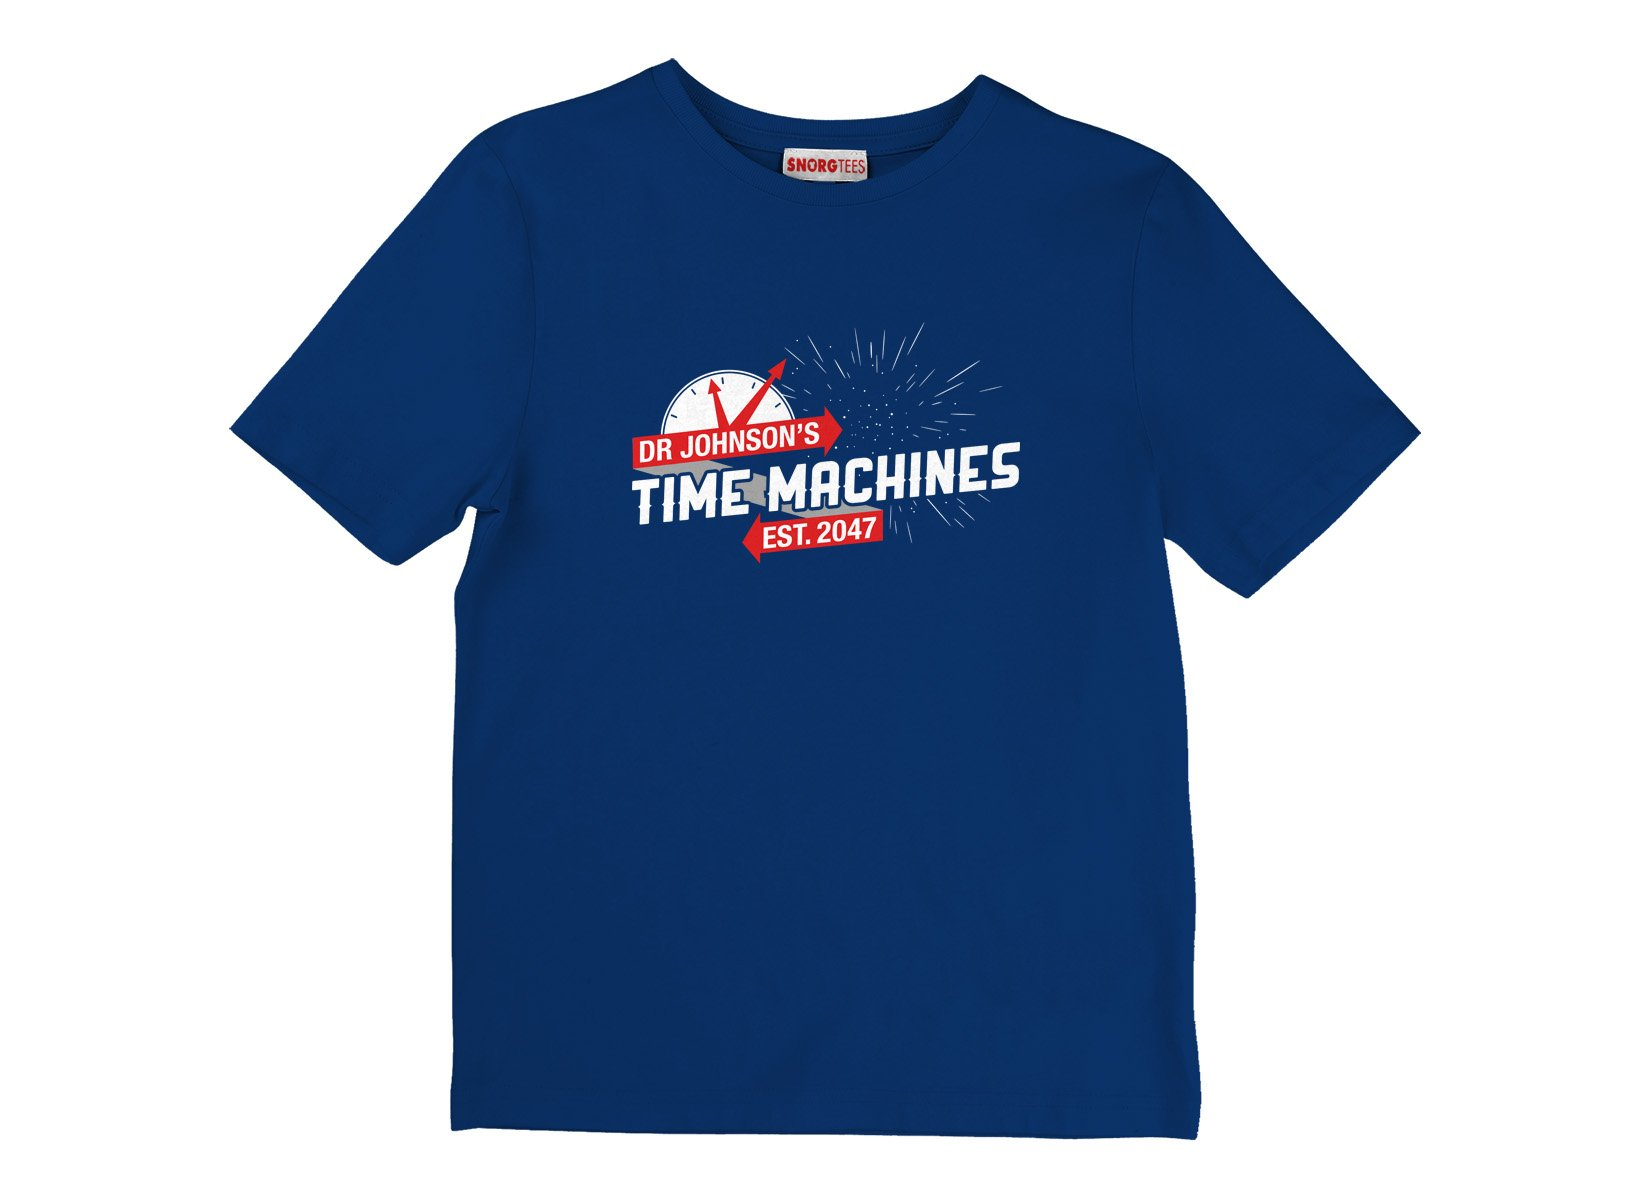 Dr Johnson's Time Machines on Kids T-Shirt